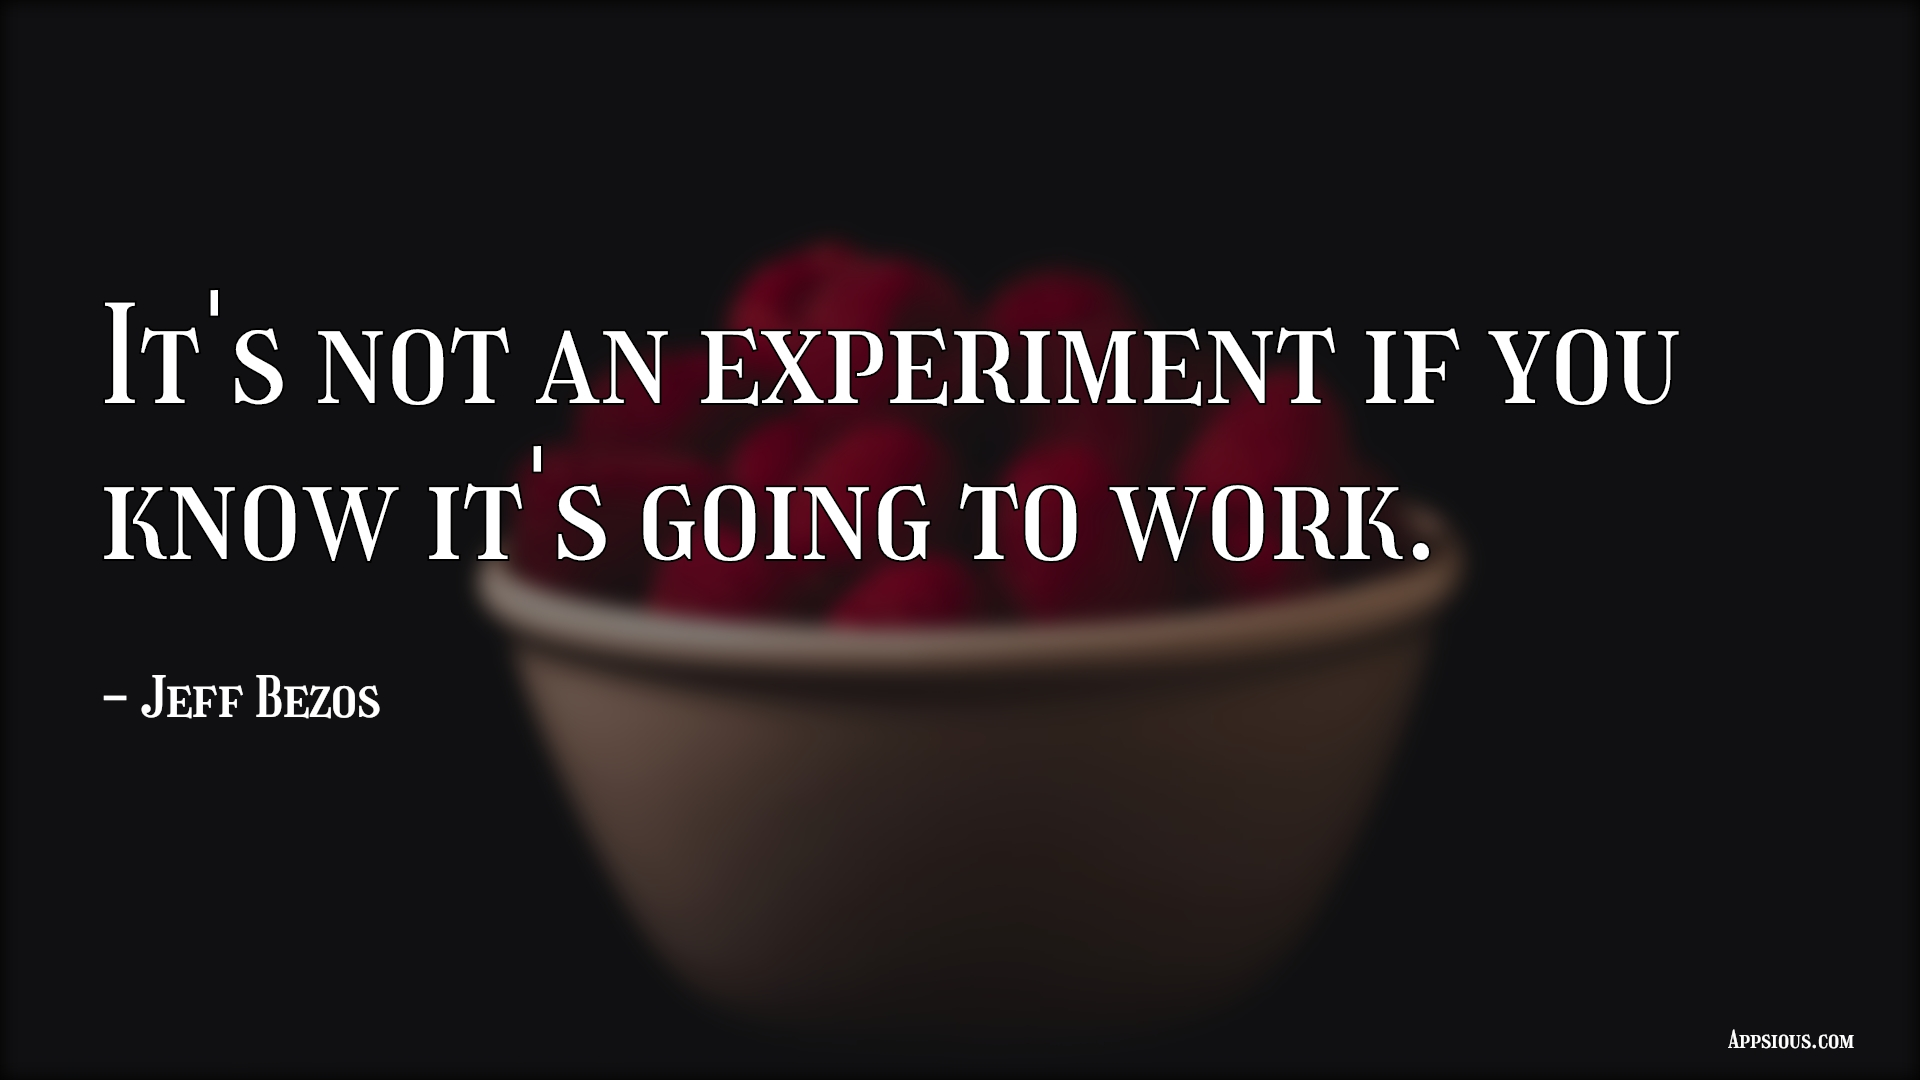 It's not an experiment if you know it's going to work.